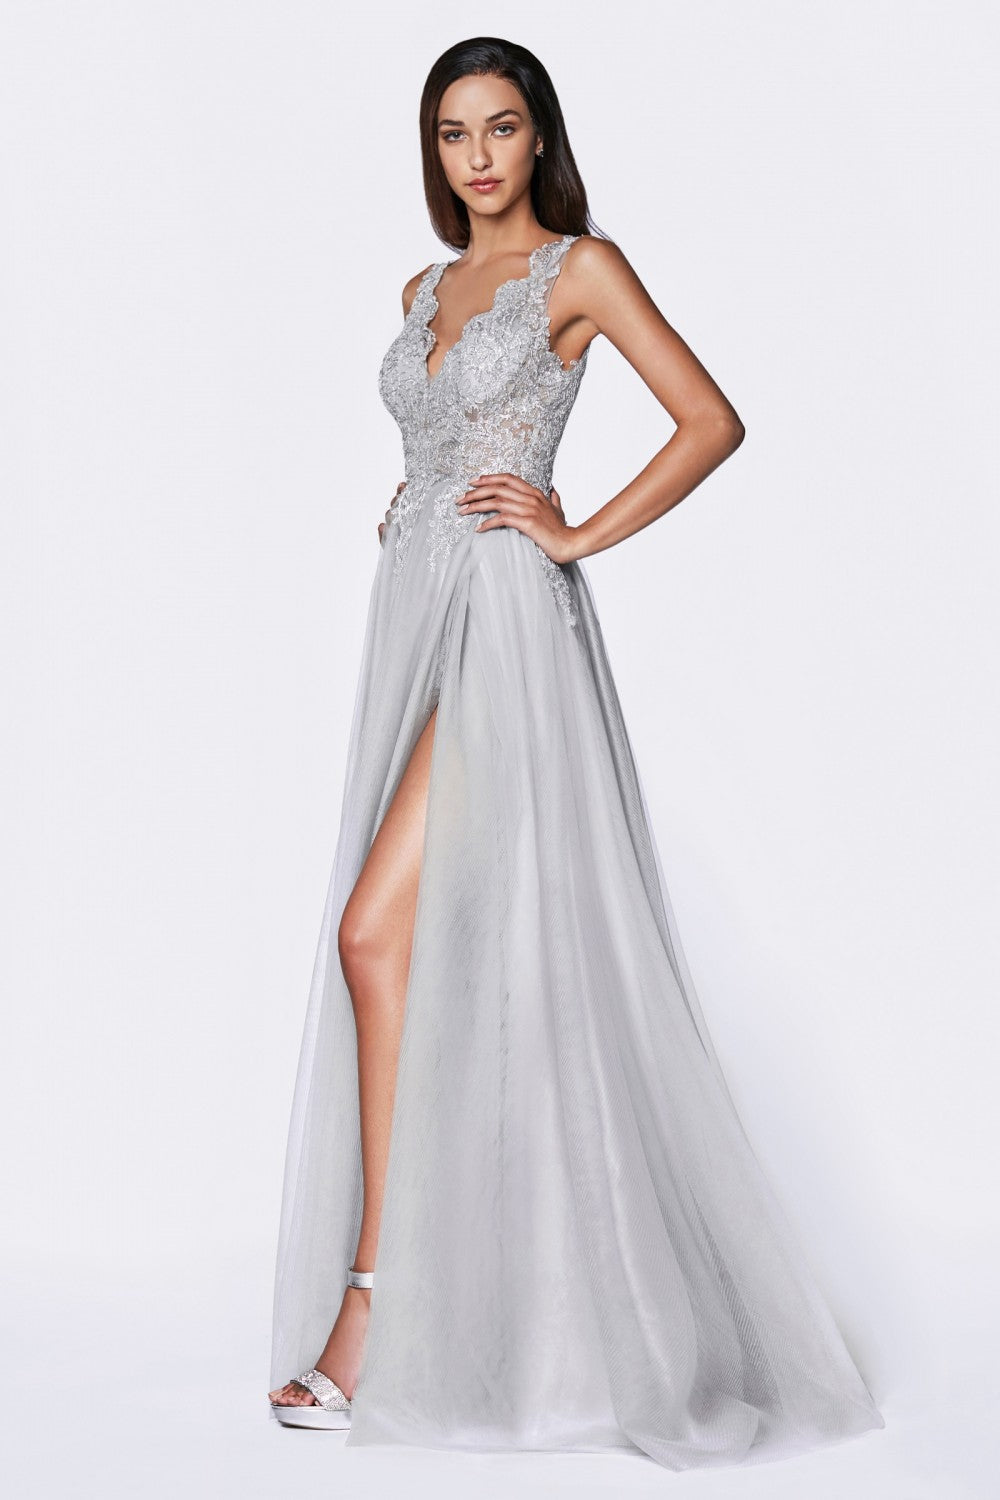 A-Line Tulle Gown With Deep V-Neckline And High Slit